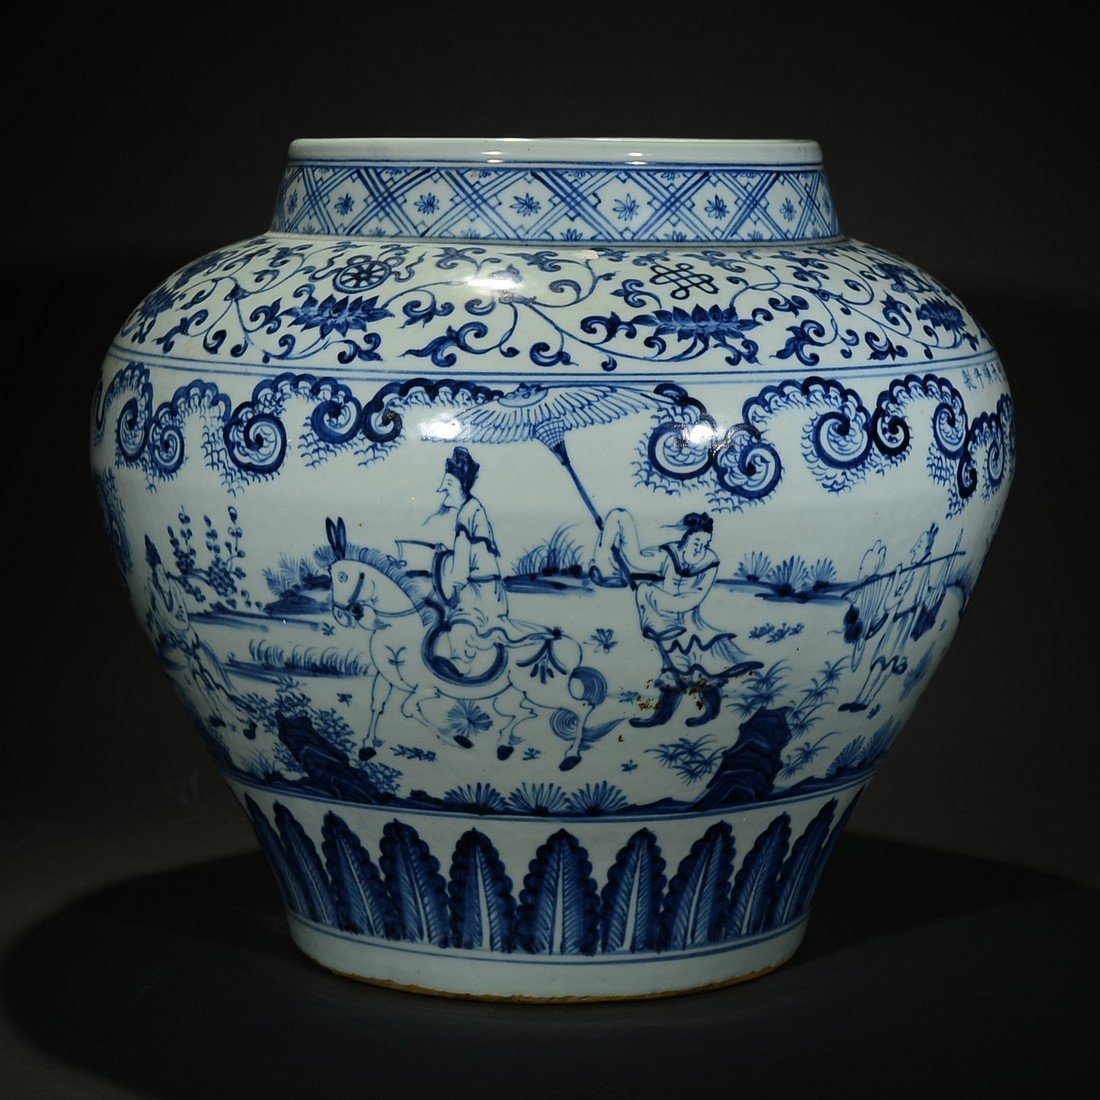 TIANSHUN MARK, A BLUE AND WHITE FLORAL JAR